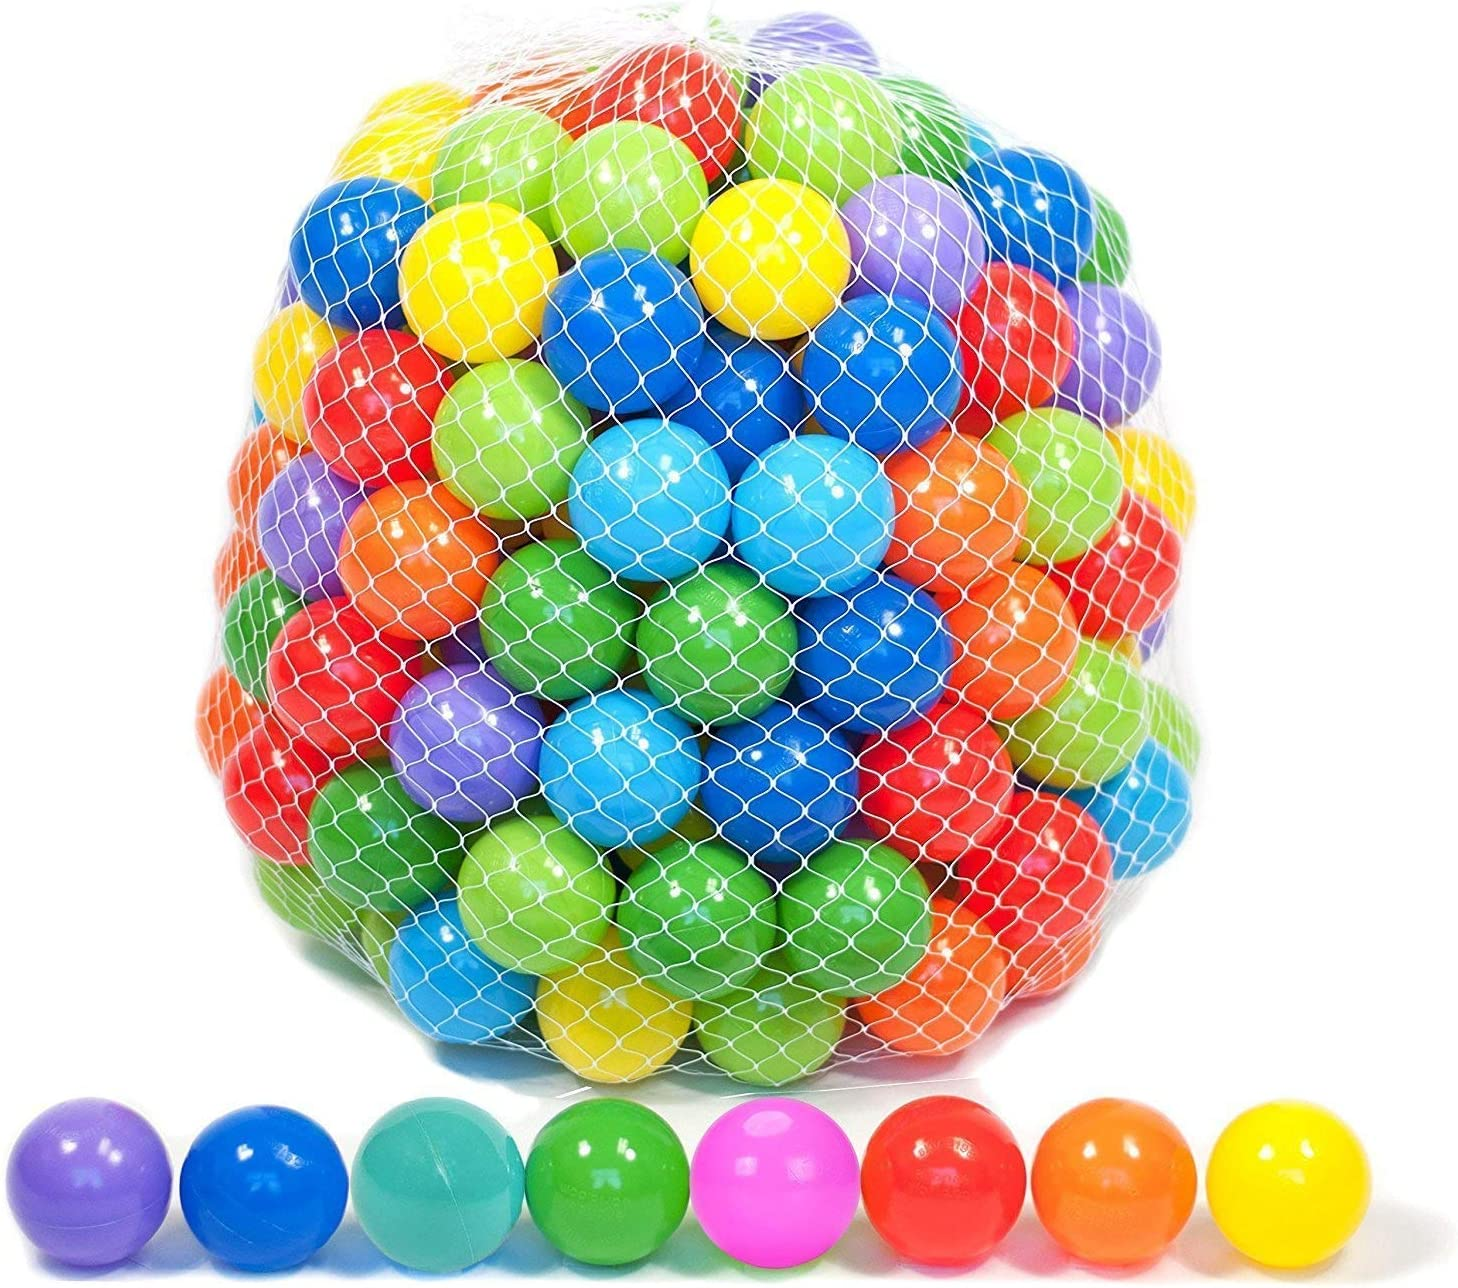 Top 9 Best Ball Toy For Toddlers (2020 Reviews & Guide) 4